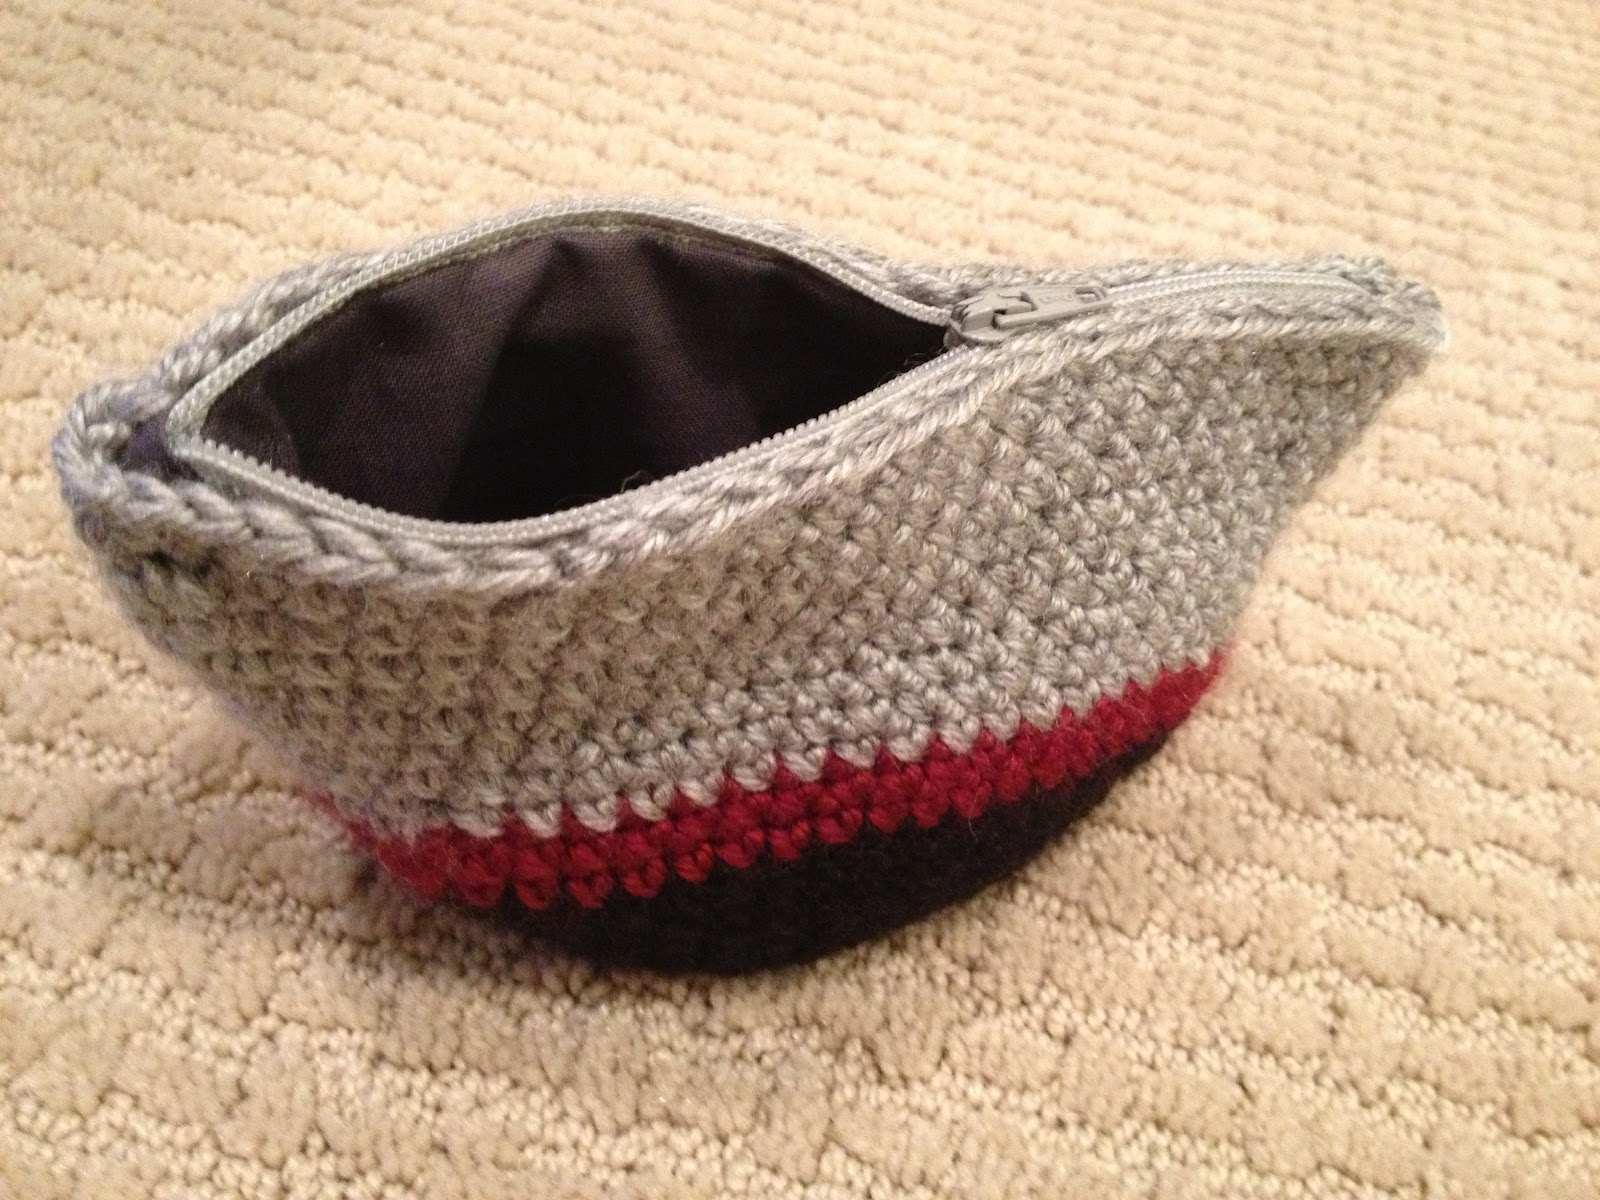 Crochet Zipper Pouch Tutorial : here is the pattern that I used. Sadly it is in French but the pattern ...